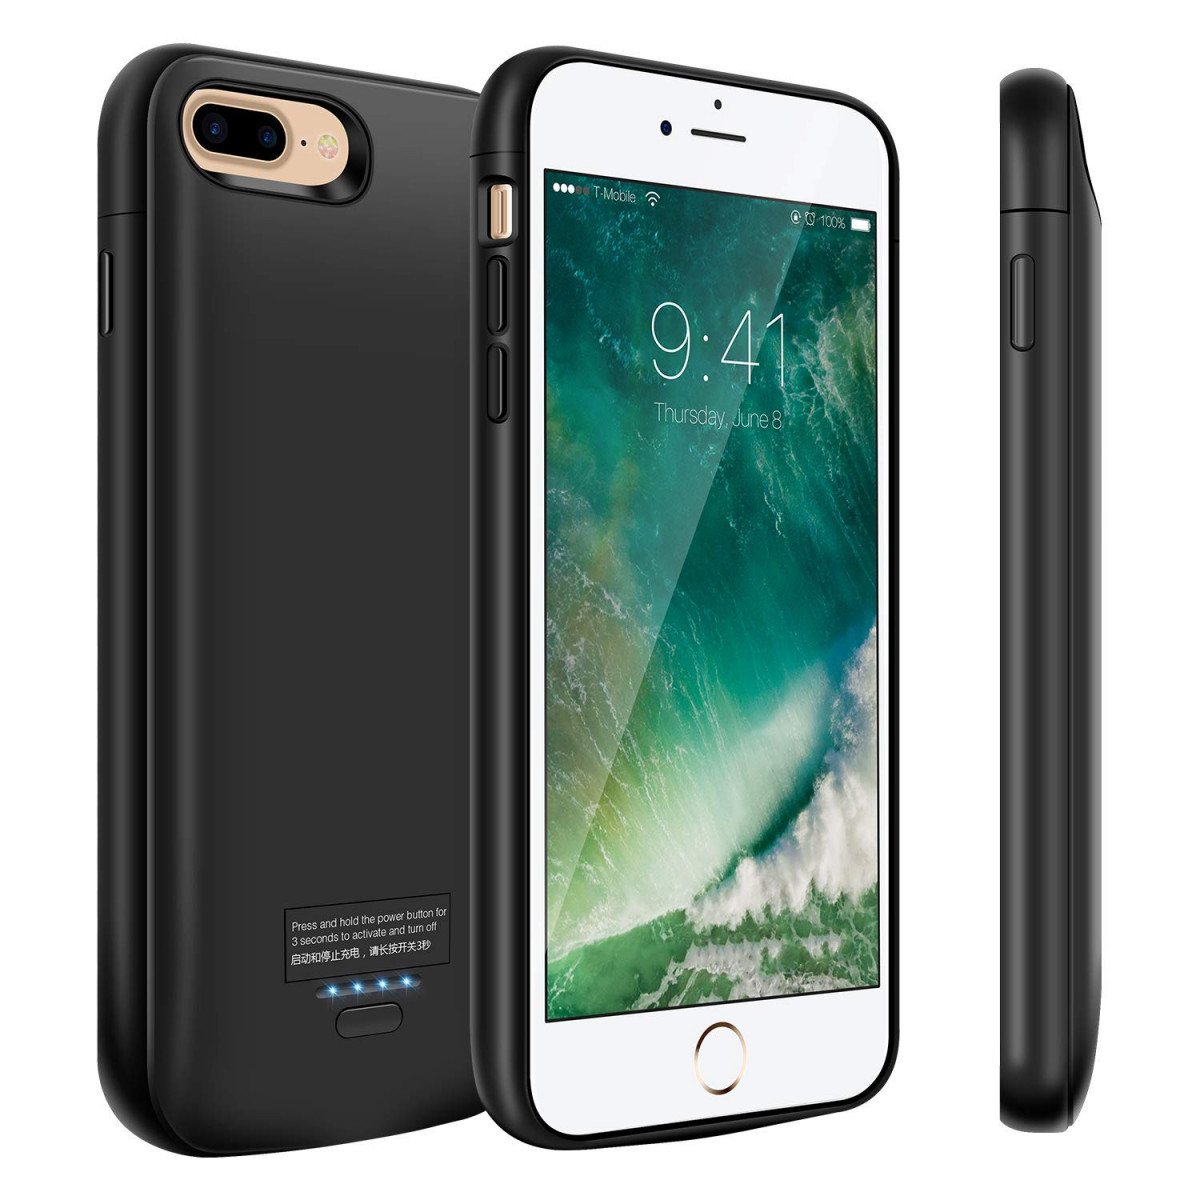 separation shoes 3a521 fb211 iPhone 8 Plus/7 Plus Battery Case, 5500mAh Slim Portable Battery Charger  Case, Rechargeable Extended Battery Pack Charging Case for iPhone 8 Plus/7  ...